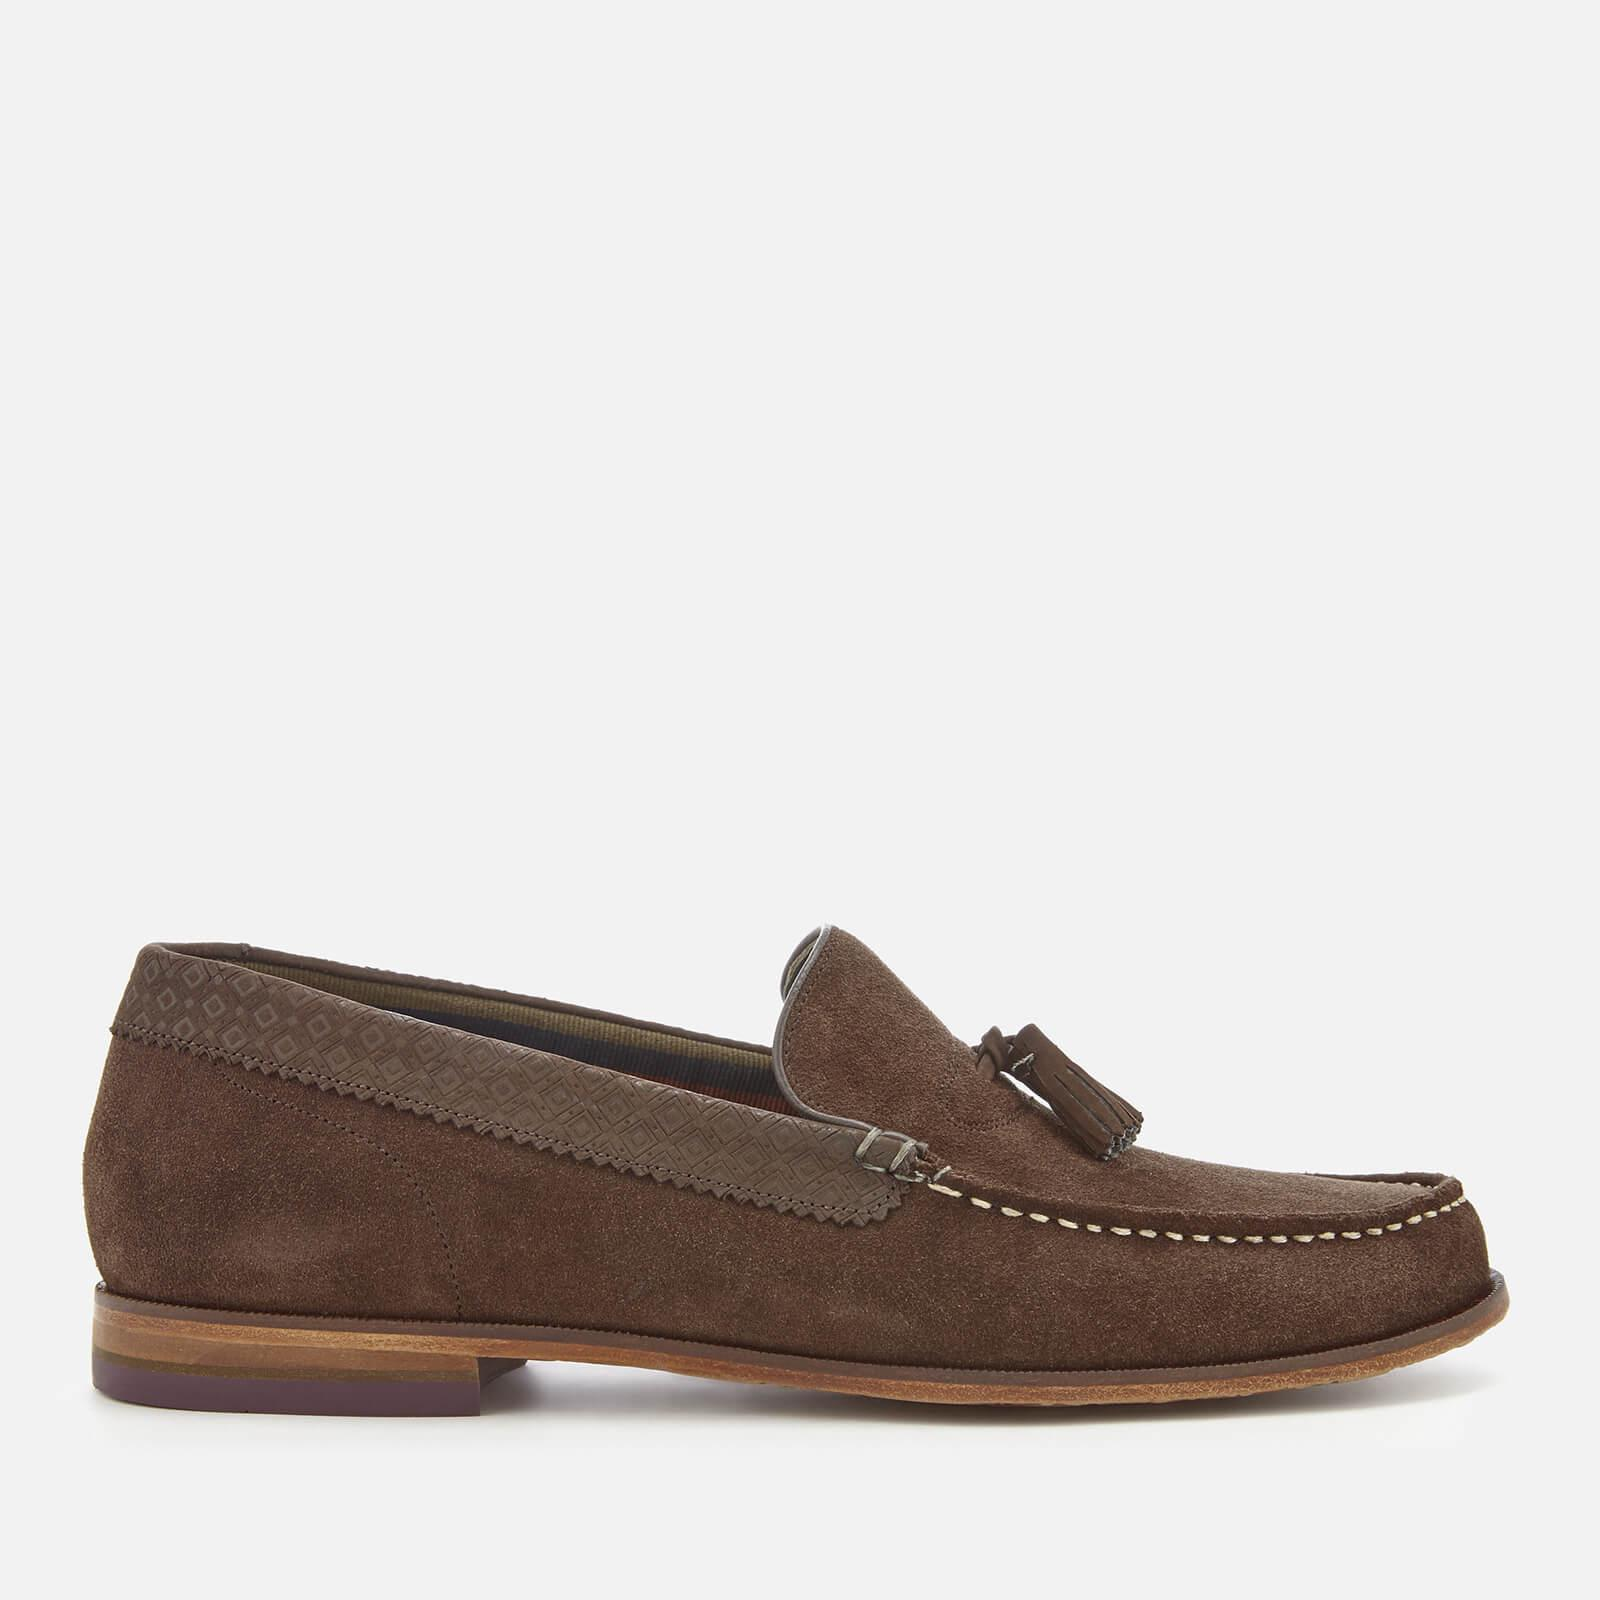 Ted Baker Dougge 2 Suede Tassel Loafers in Brown for Men